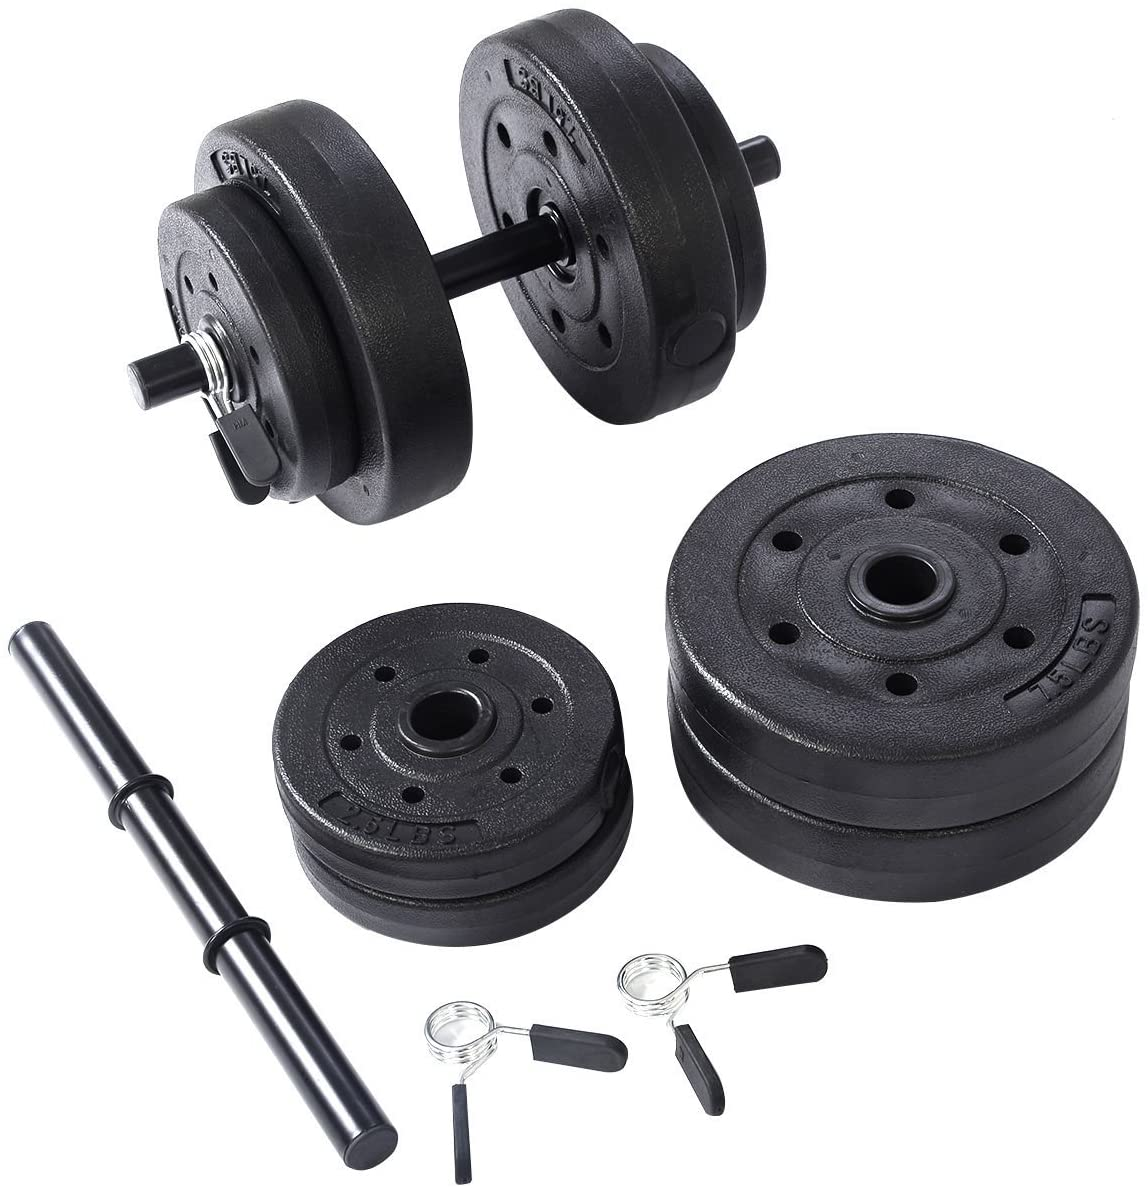 Goplus Weight Dumbell Set 40 LB Adjustable Cap Gym Barbell Plates Body Workout